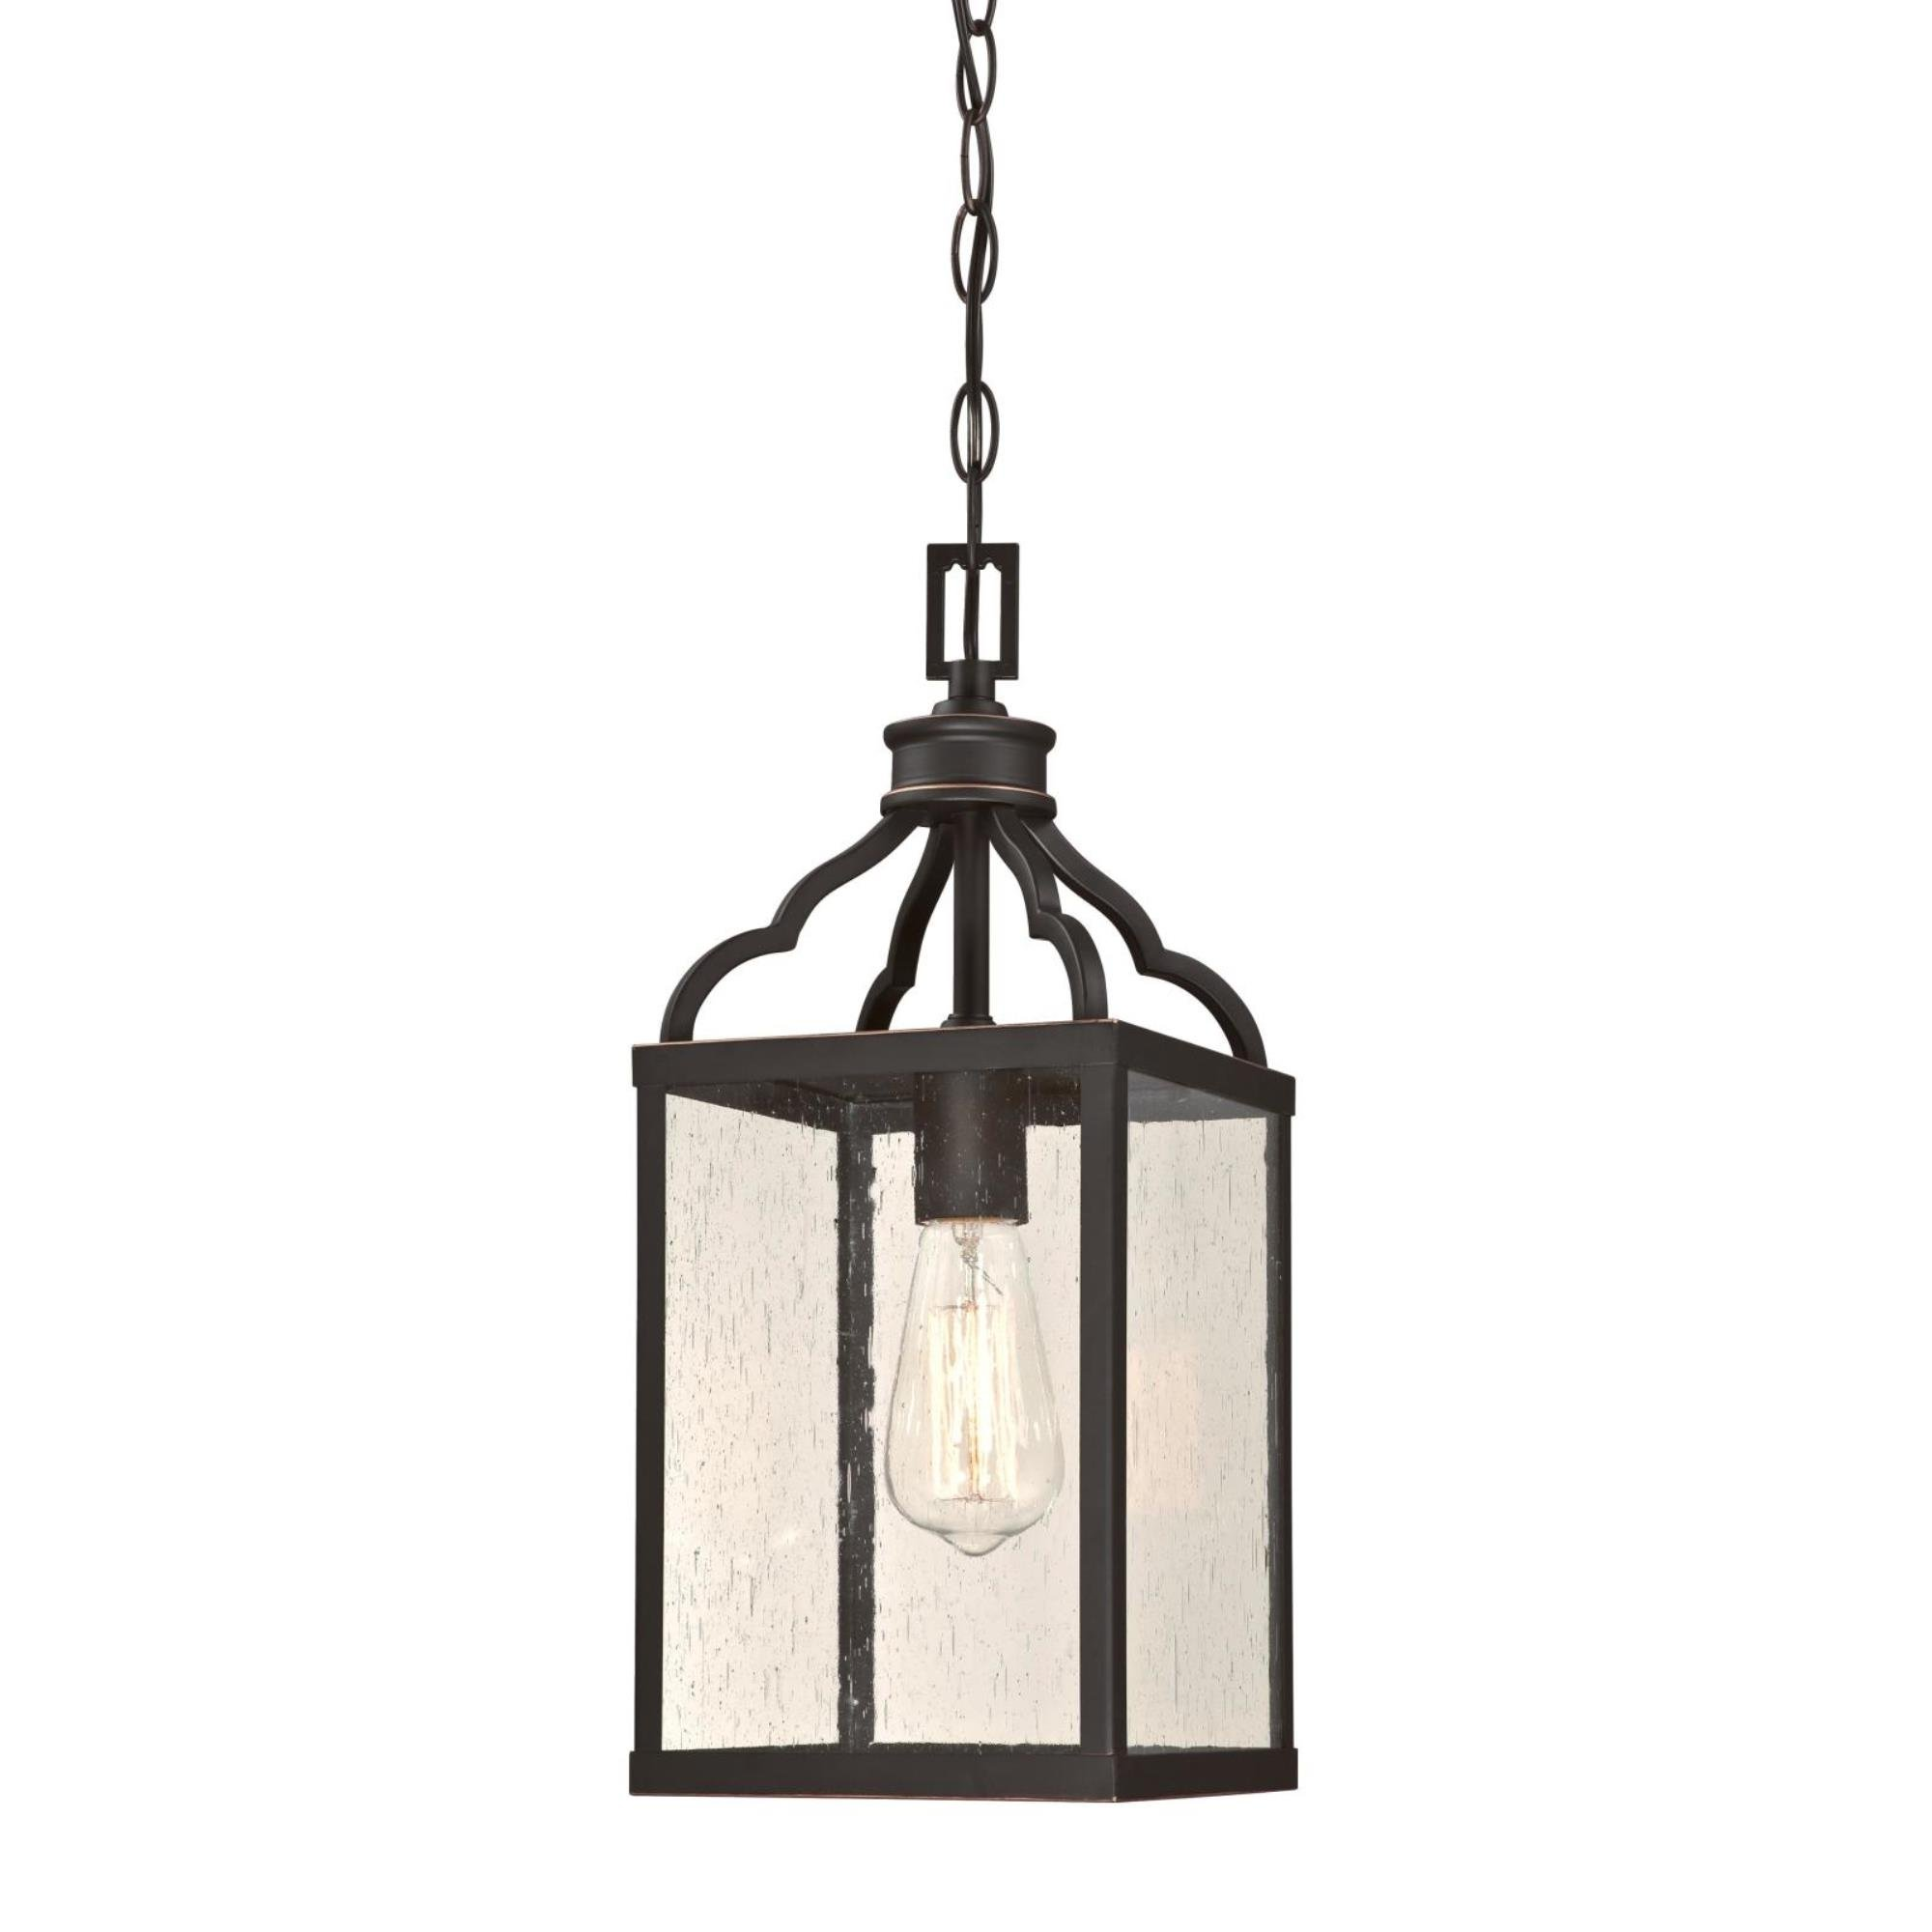 Westinghouse Lighting 6359300 Cardinal One-Light, Oil Rubbed Bronze Finish with Highlights and Clear Seeded Glass Outdoor Pendant, HI